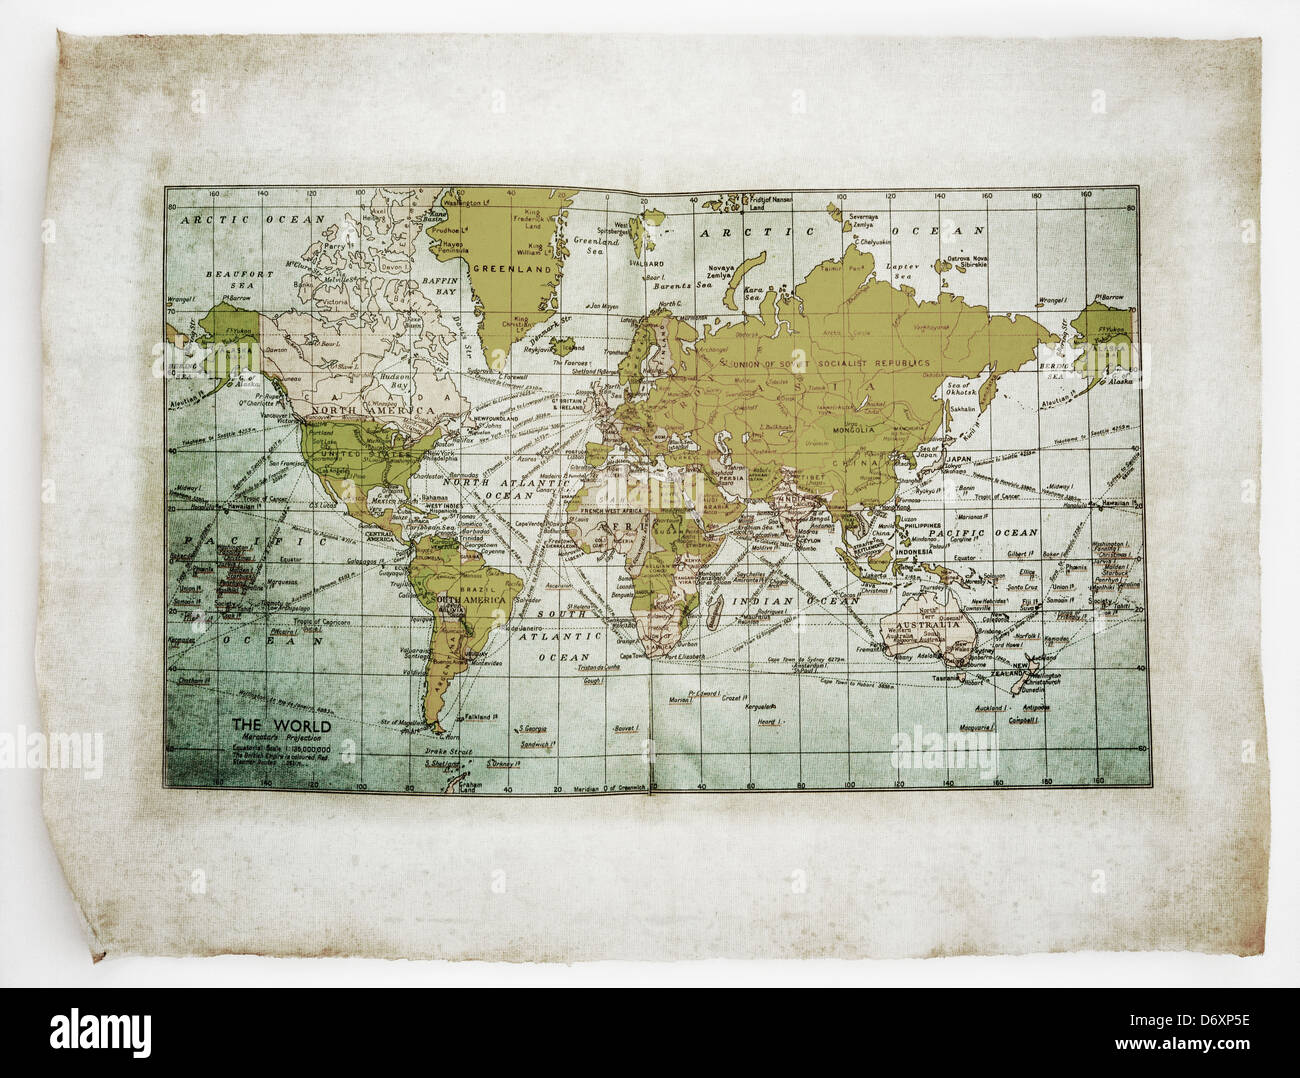 Map of the World on old dirty curled parchment - Stock Image